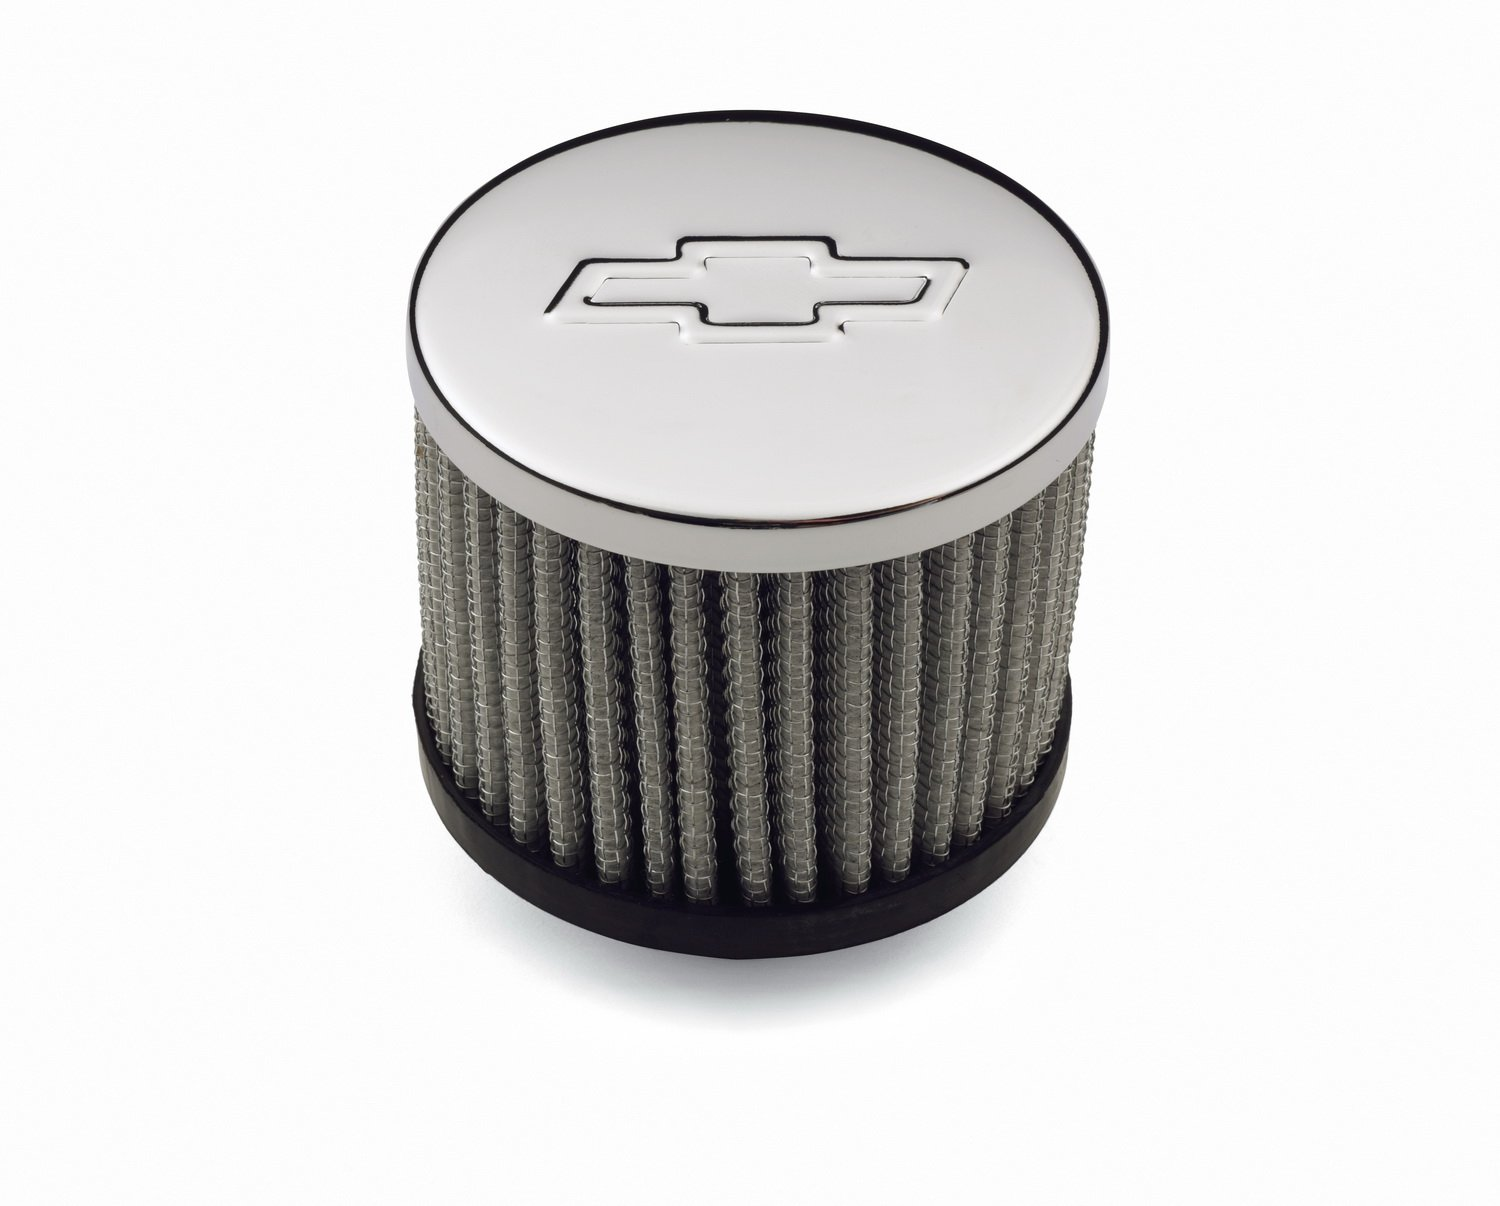 K/&N 62-2470 Vent Air Filter // Breather: Vent Air Filter// Breather; 0.313 in Top 29 mm Flange ID; 1.125 in Base; 1.375 in 35 mm 8 mm Height; 1.375 in 35 mm